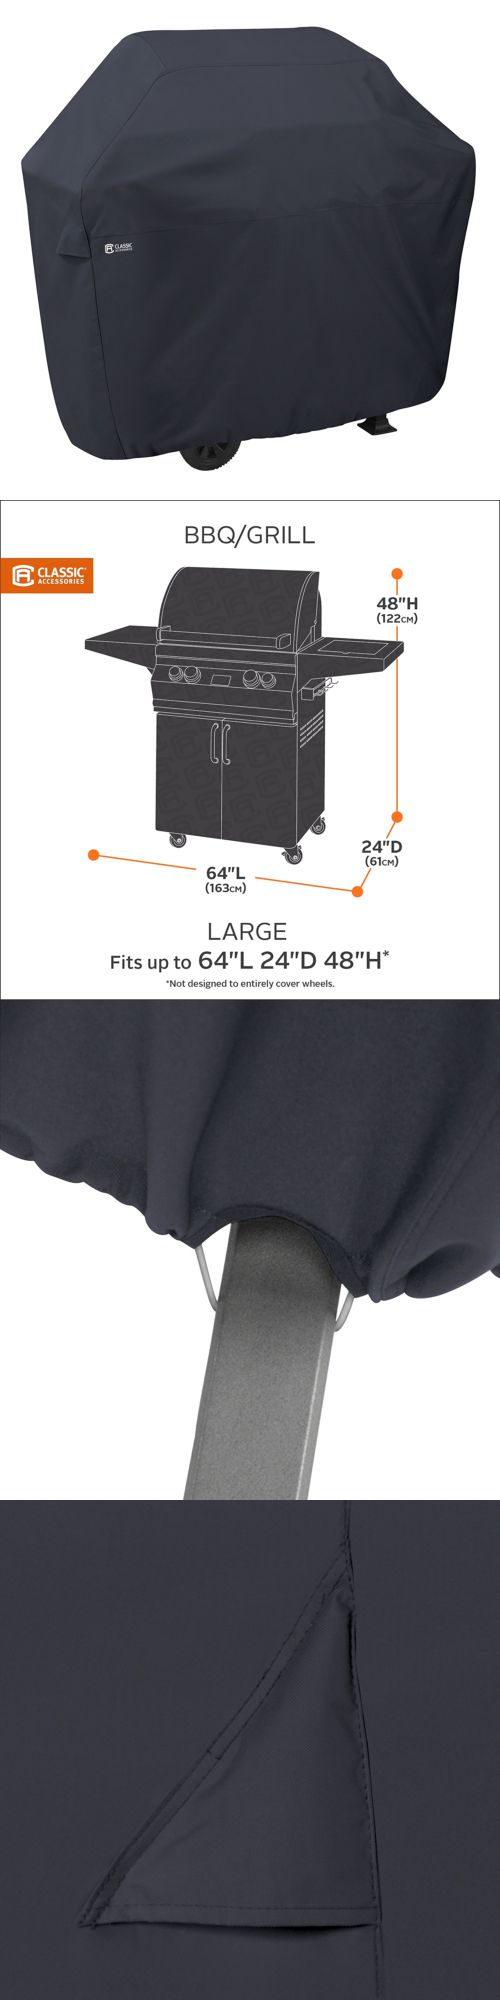 barbecue and grill covers heavy duty large bbq barbecue gas grill cover for weber